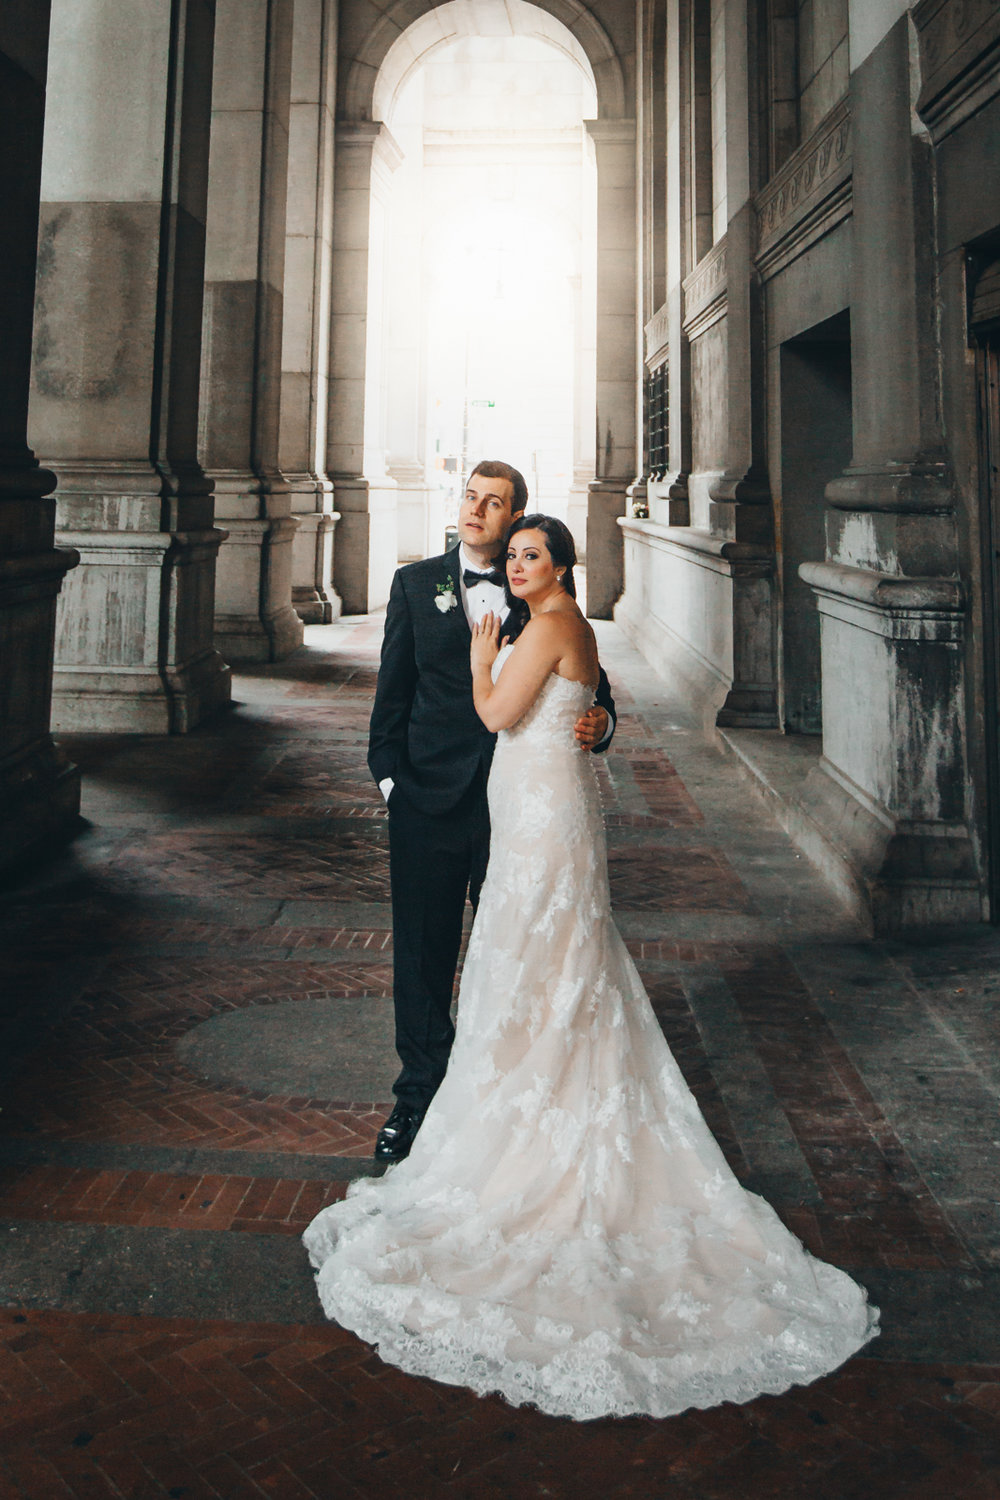 NYC Wedding Photography Lofts at Prince Brooklyn NYC Photographer Boris Zaretsky _B2C7903-Edit.jpg